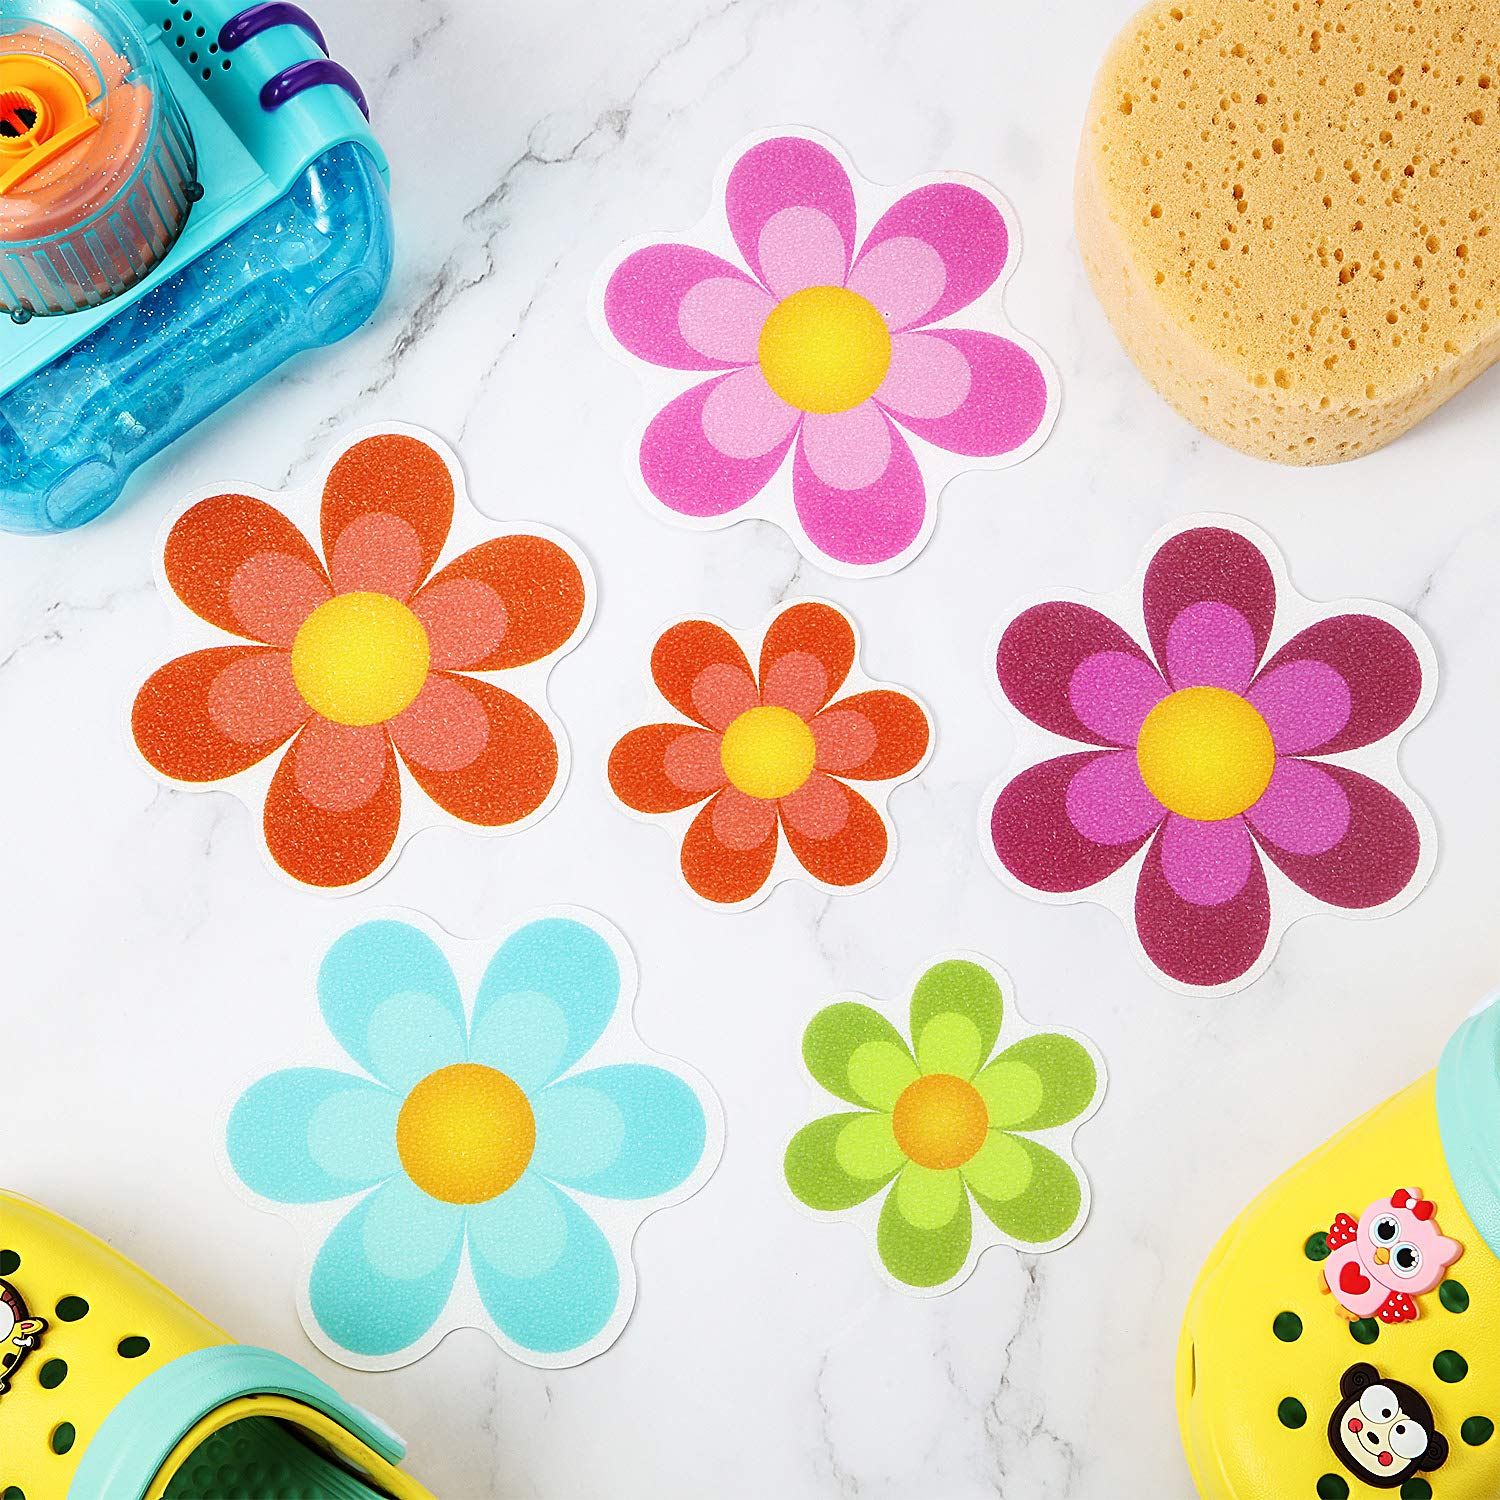 Daisy Bath Treads and Anti-Slip Appliques for Bath Tub 10 Pieces Non Slip Bathtub Stickers Adhesive Decals with Bright Colors Shower Room and Other Slippery Surfaces Multi-Color Flowers Stairs